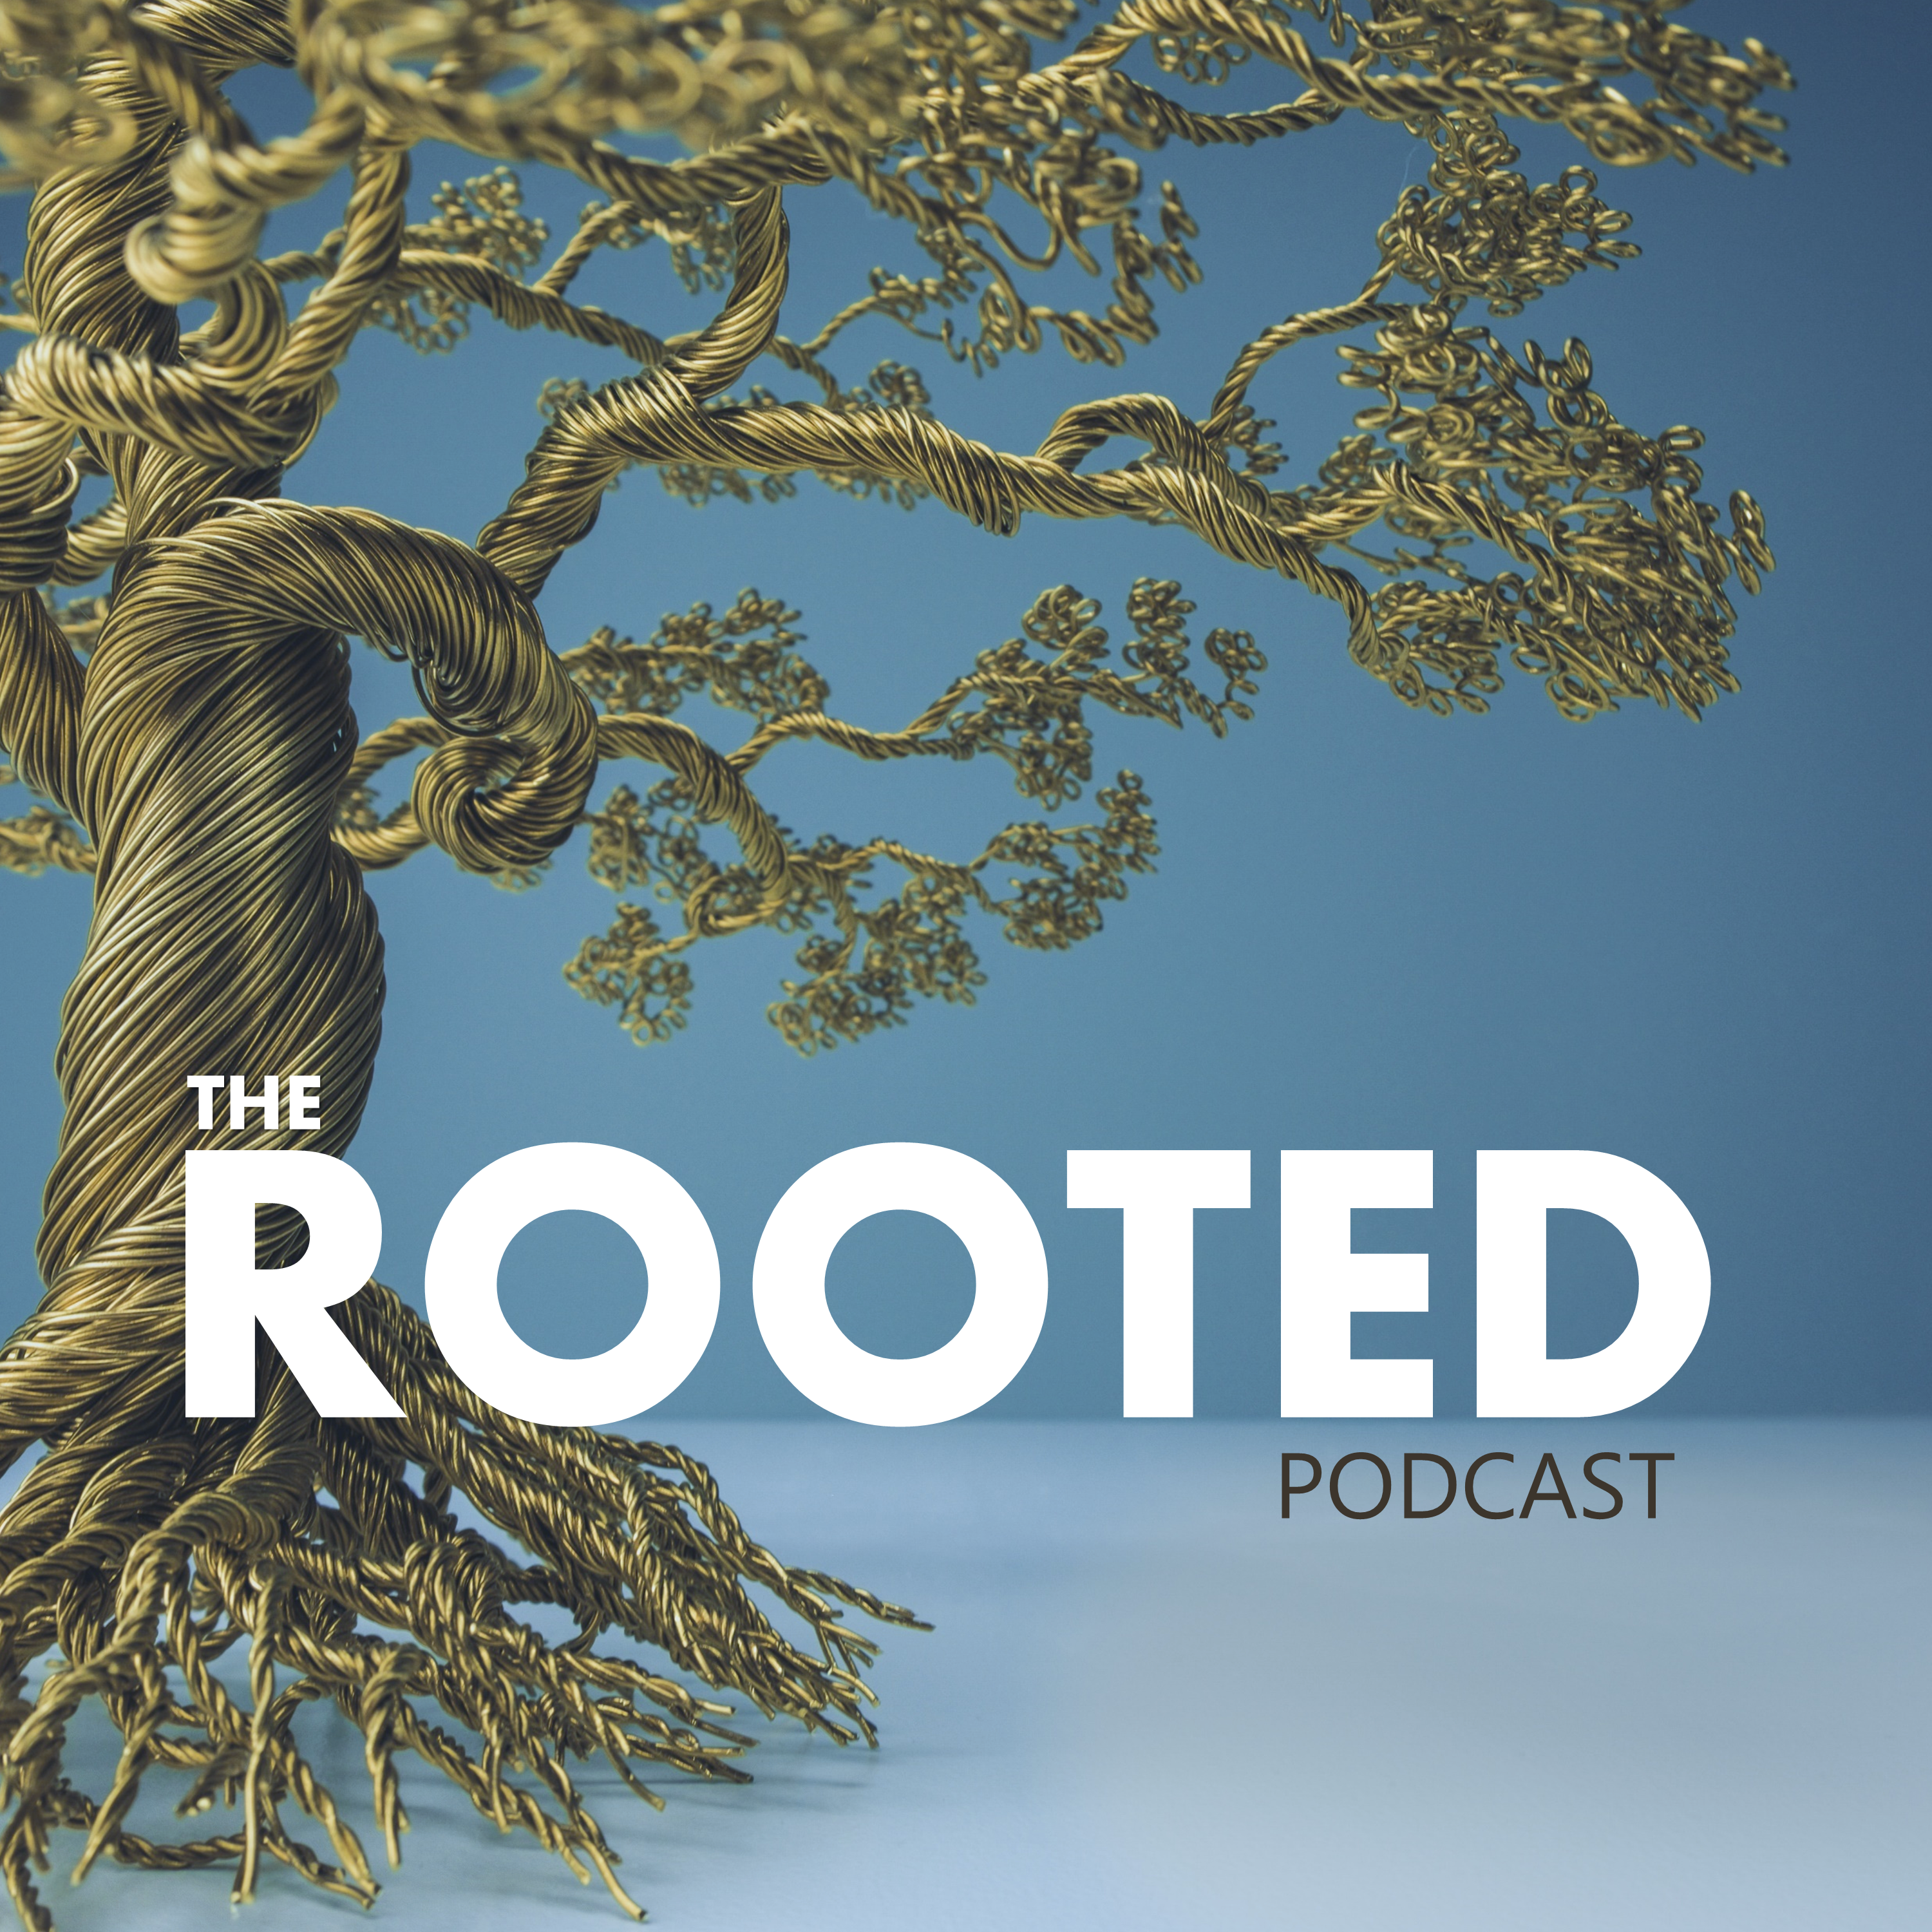 The Rooted Podcast